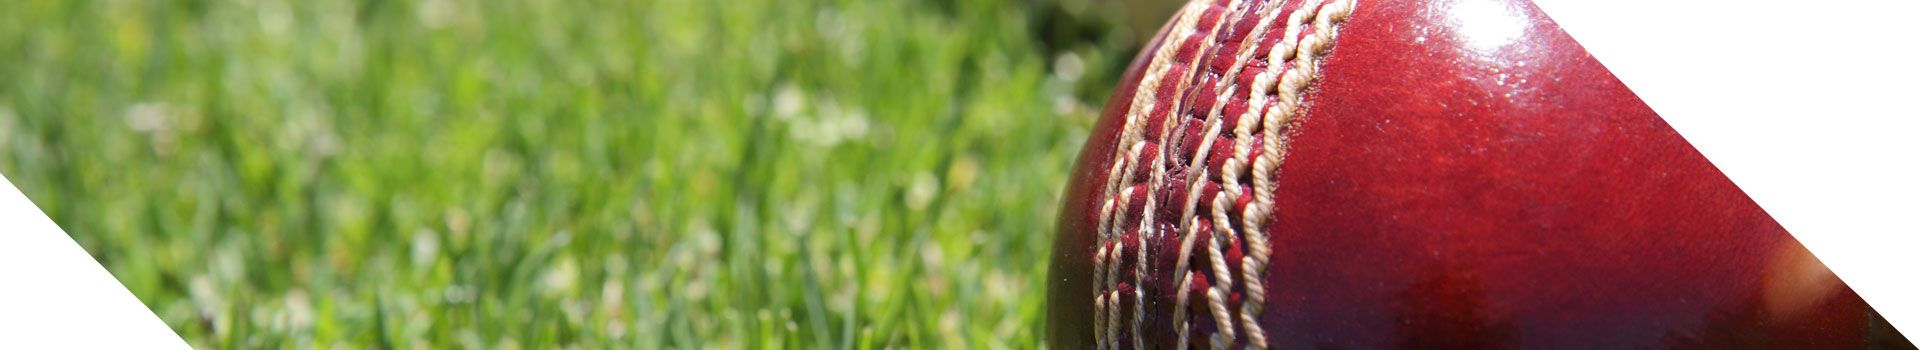 cricket netting suppliers   cricket netting for sale   indoor cricket netting